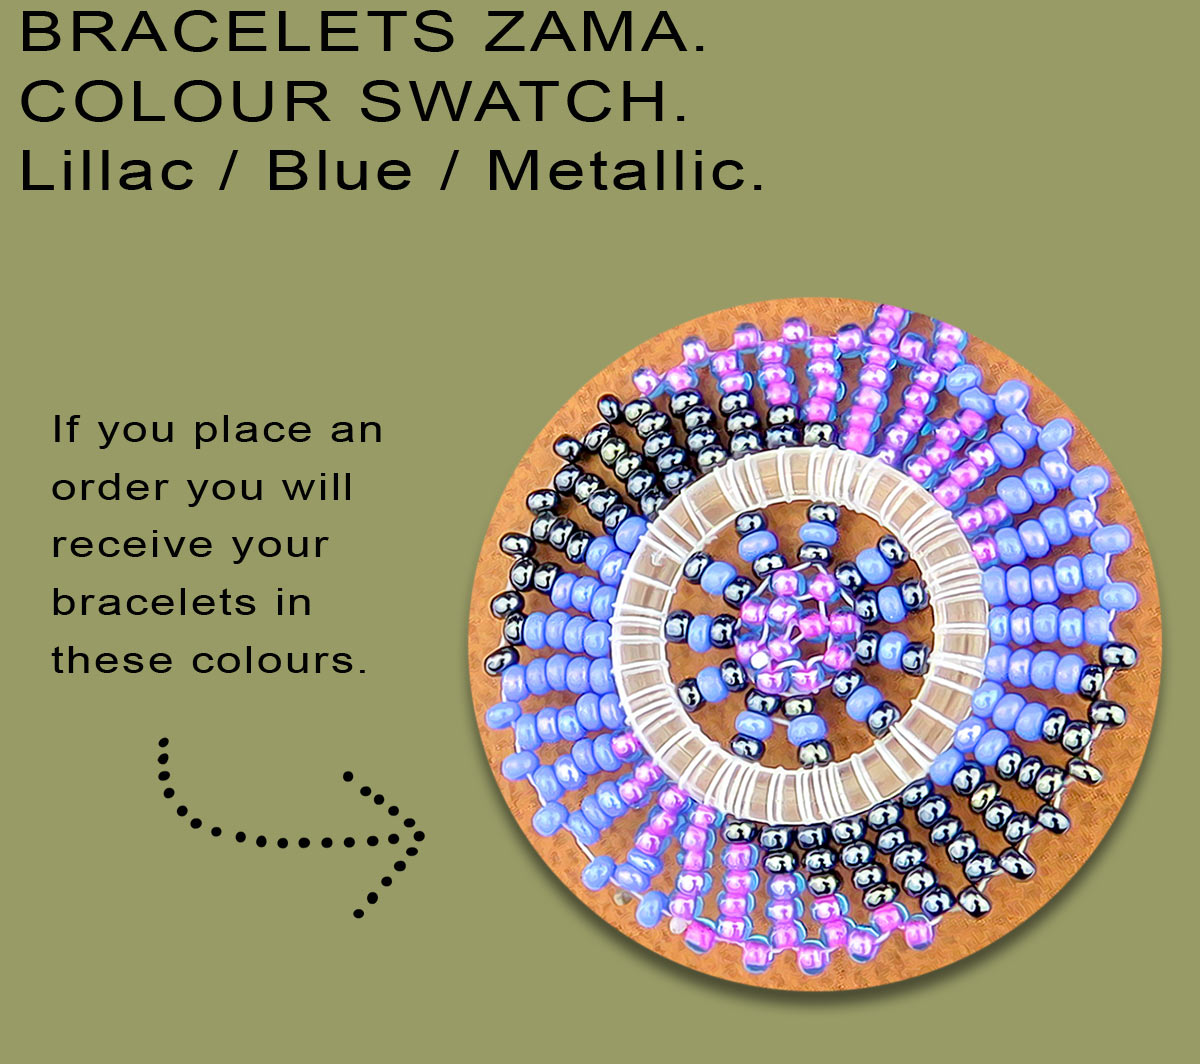 African Beaded Bracelets Zama Lillac Blue Metallic